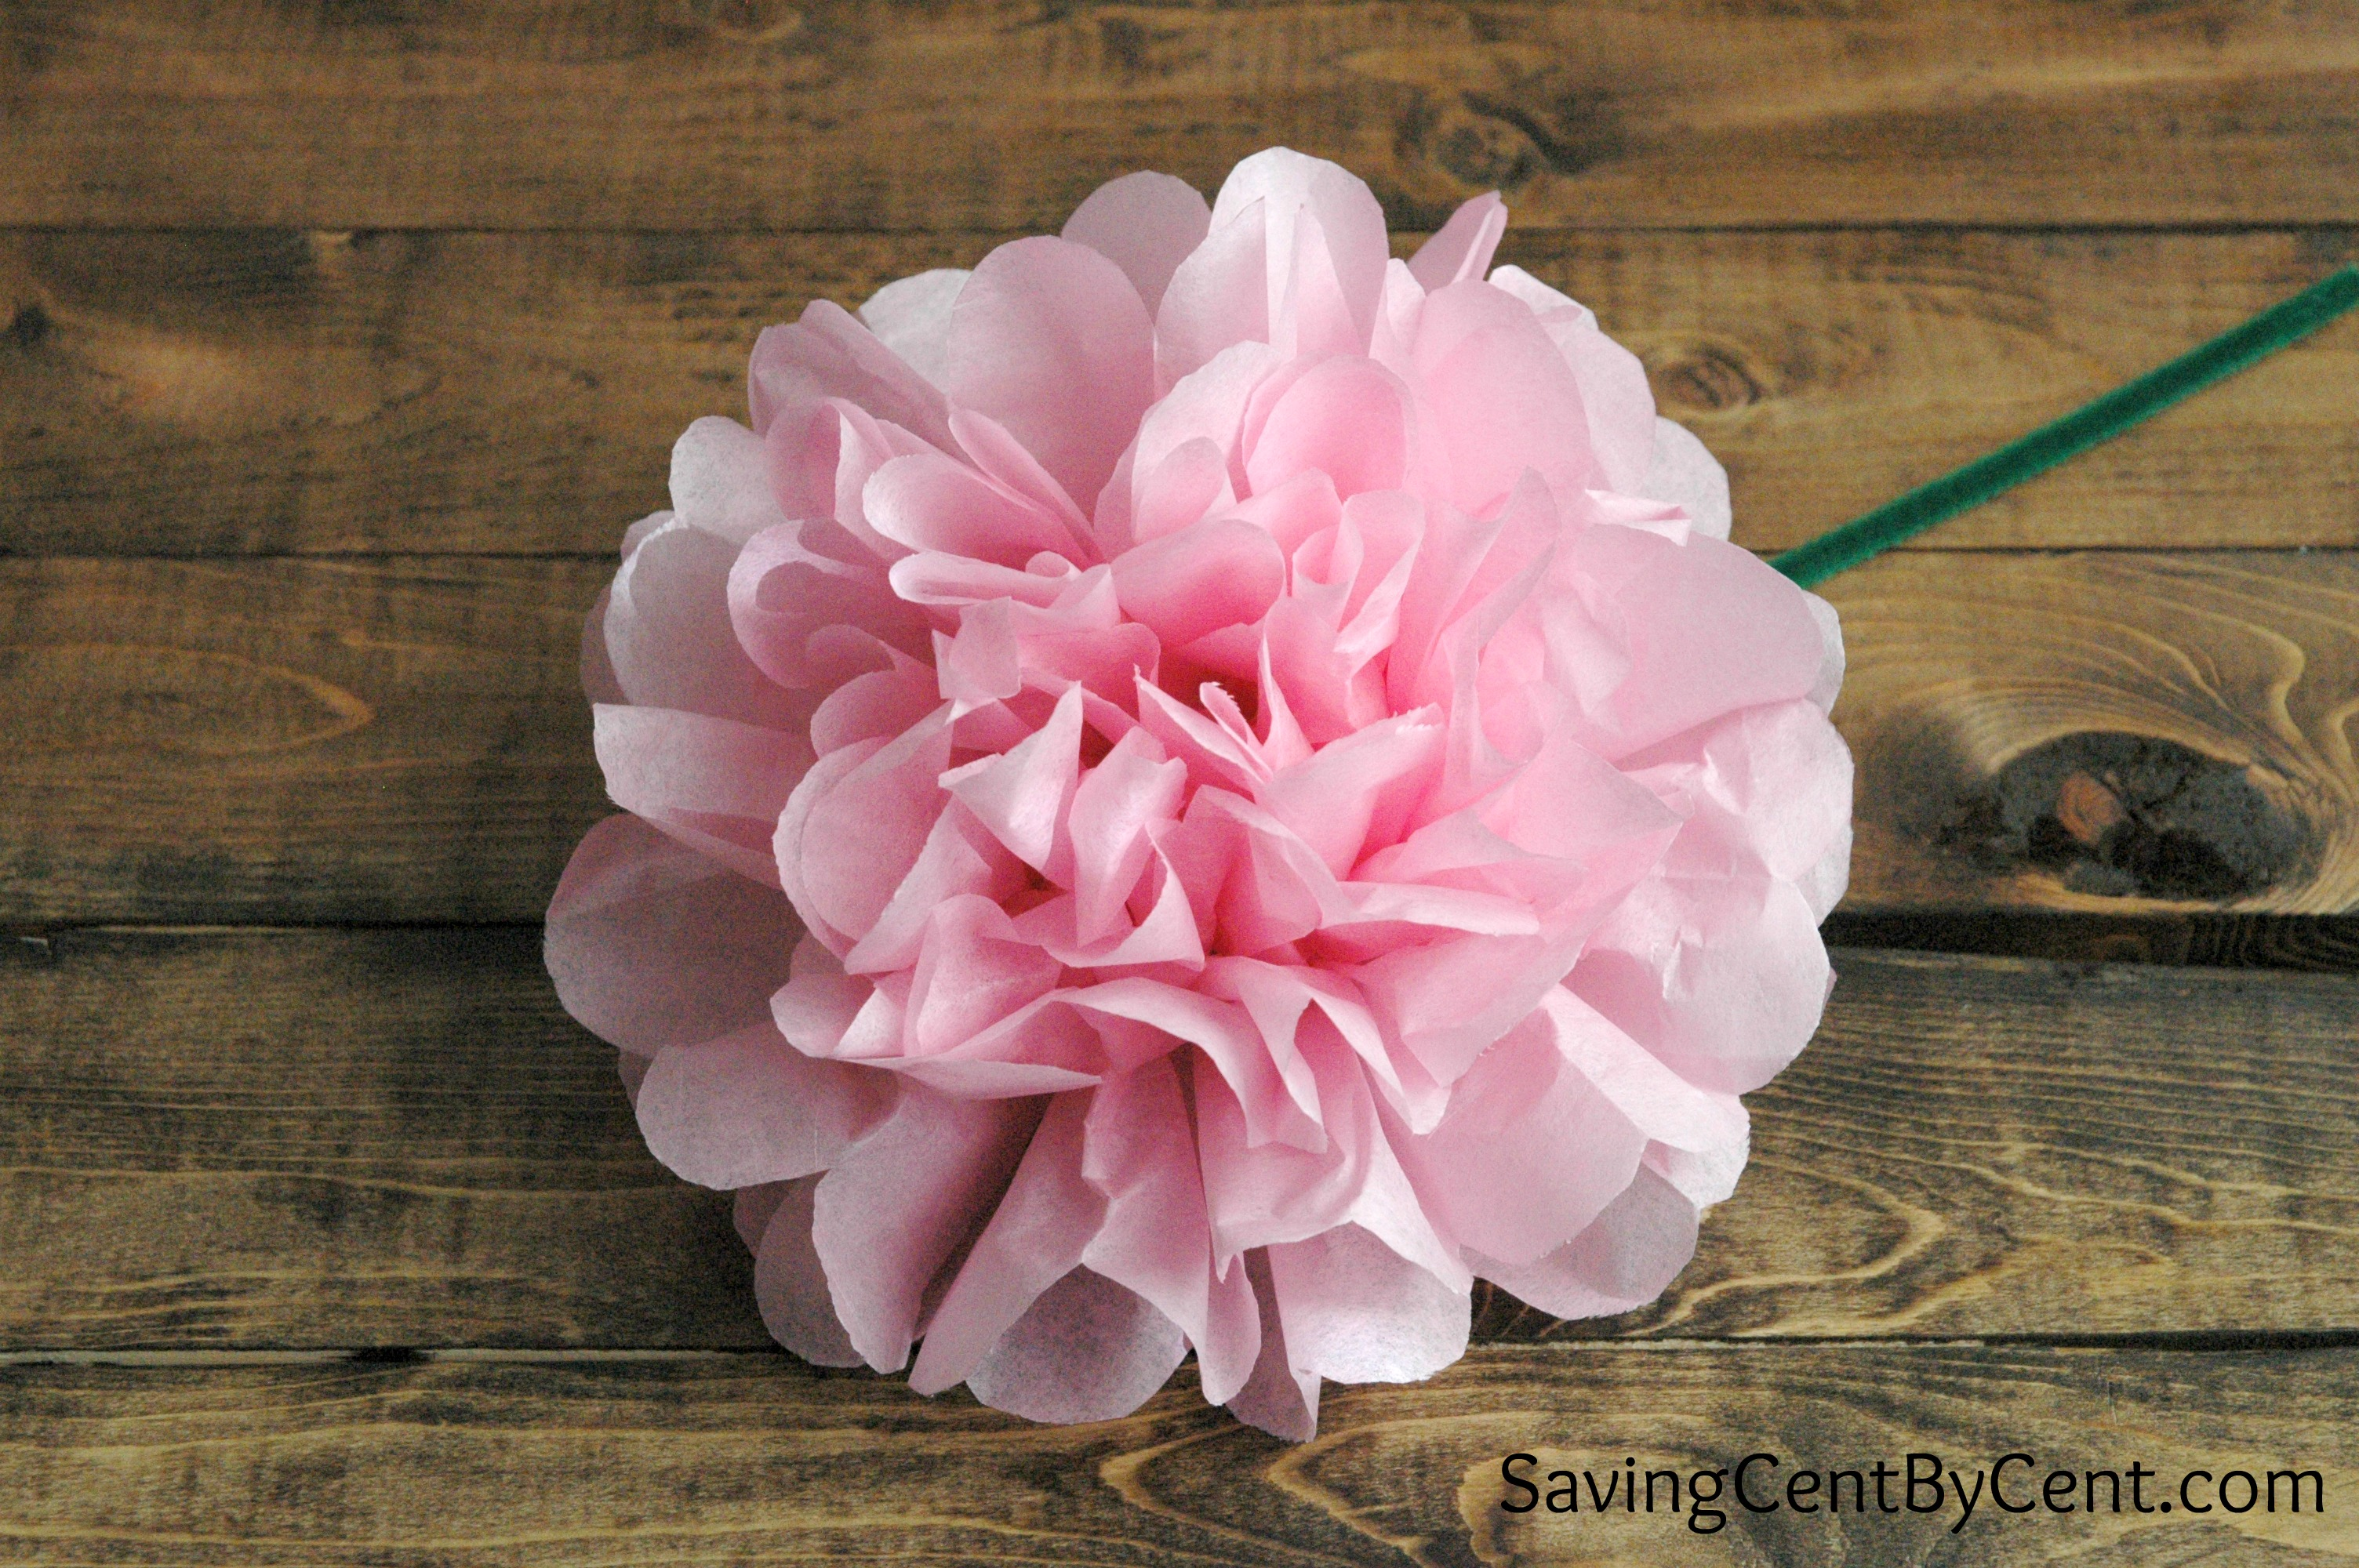 How To Make Tissue Paper Flowers Video Tutorial Saving Cent By Cent